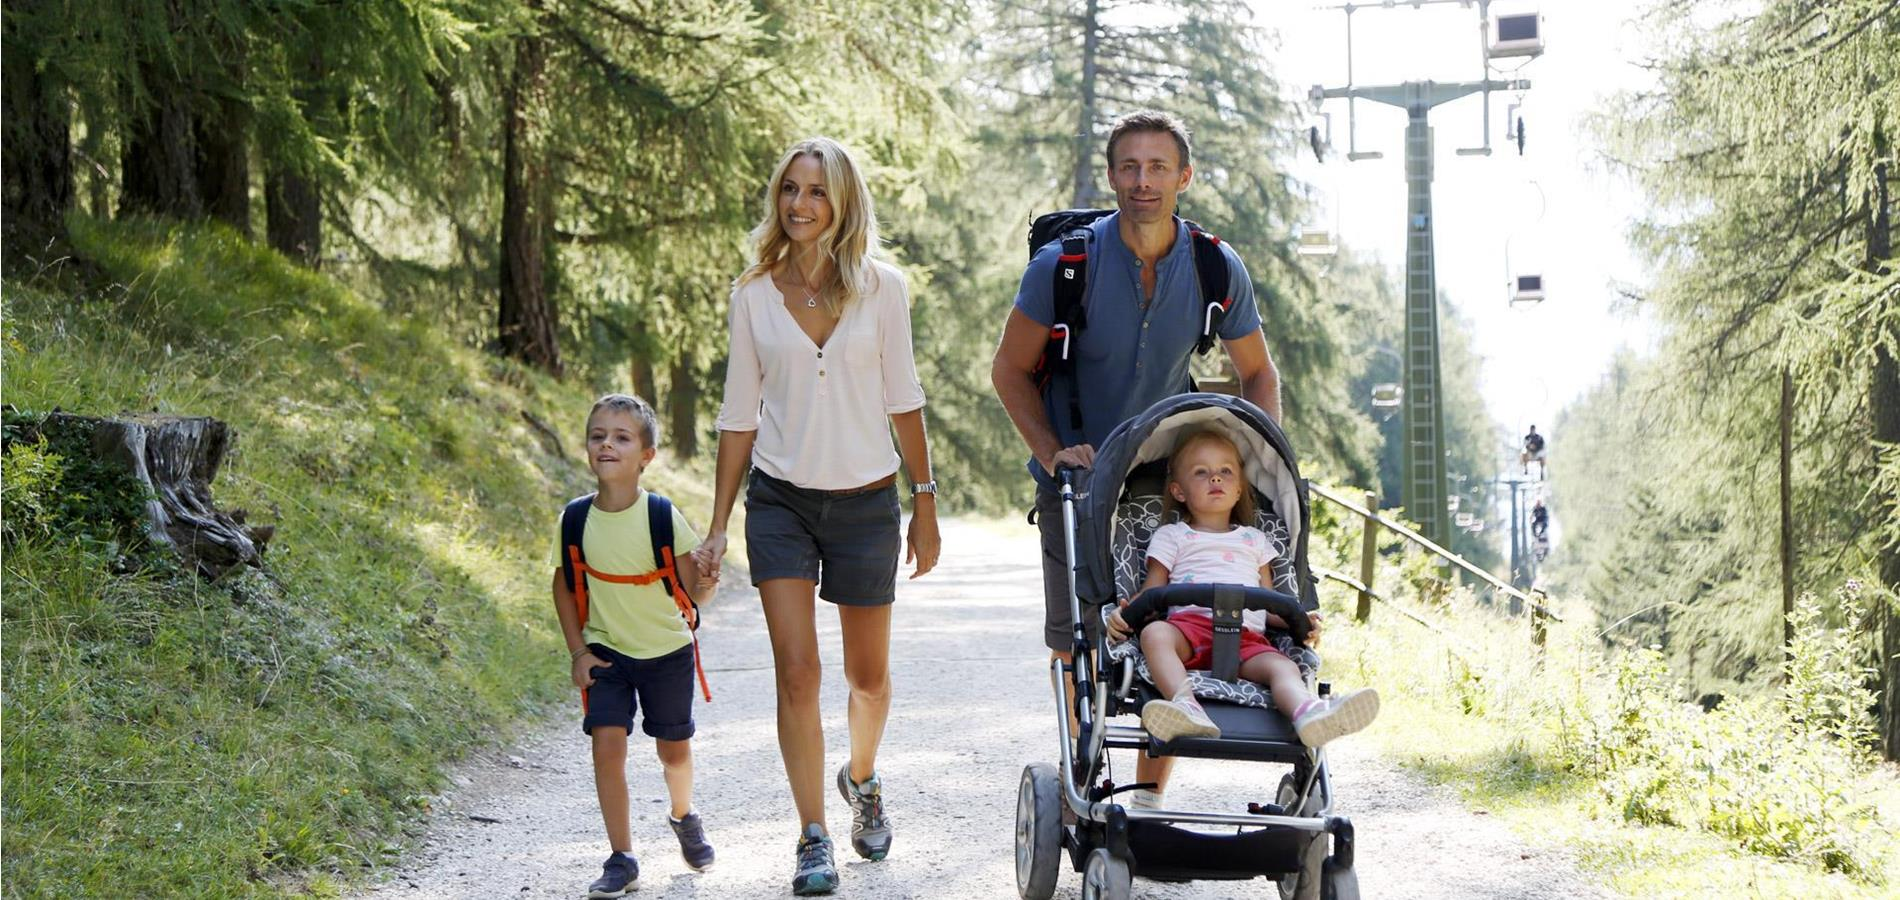 Hiking and recreation for the whole family